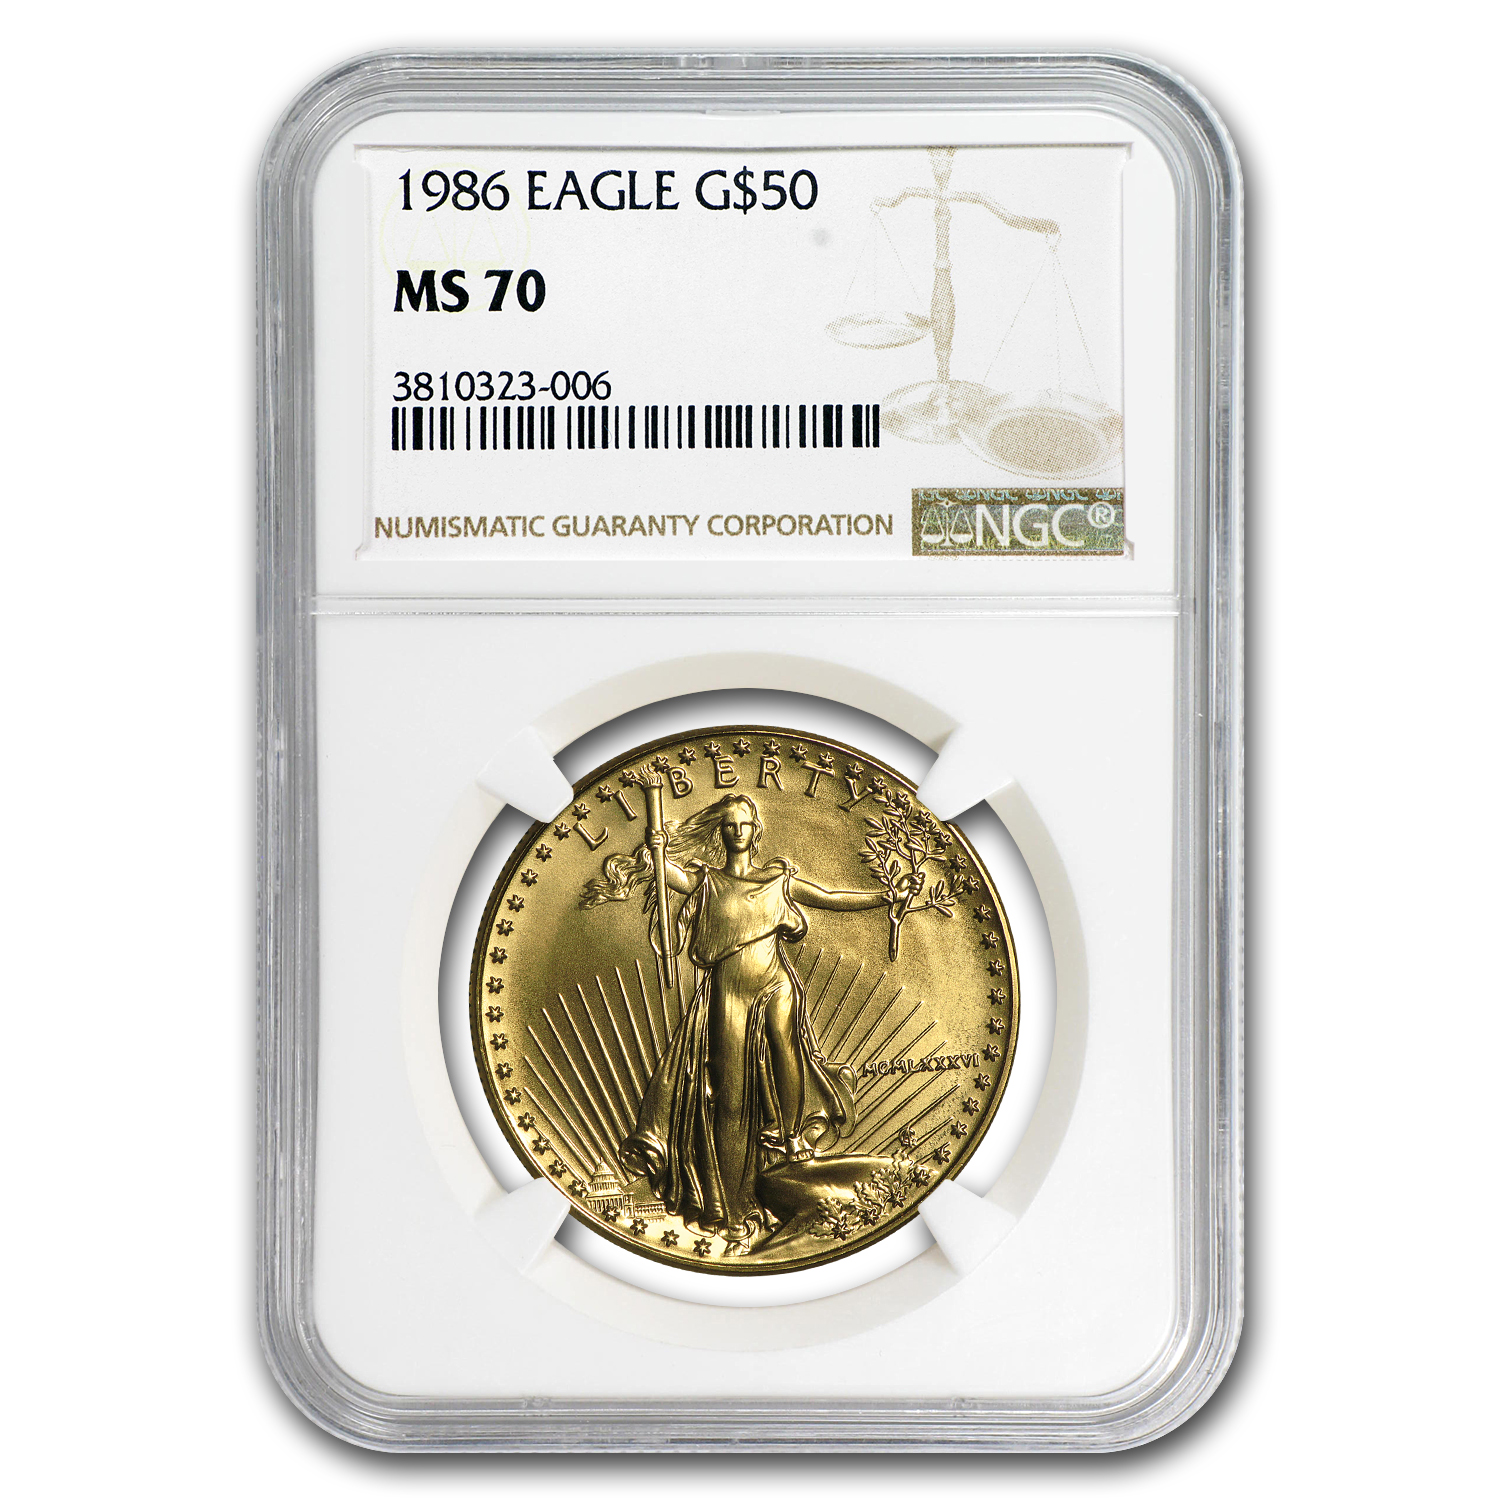 1986 1 oz Gold American Eagle MS-70 NGC